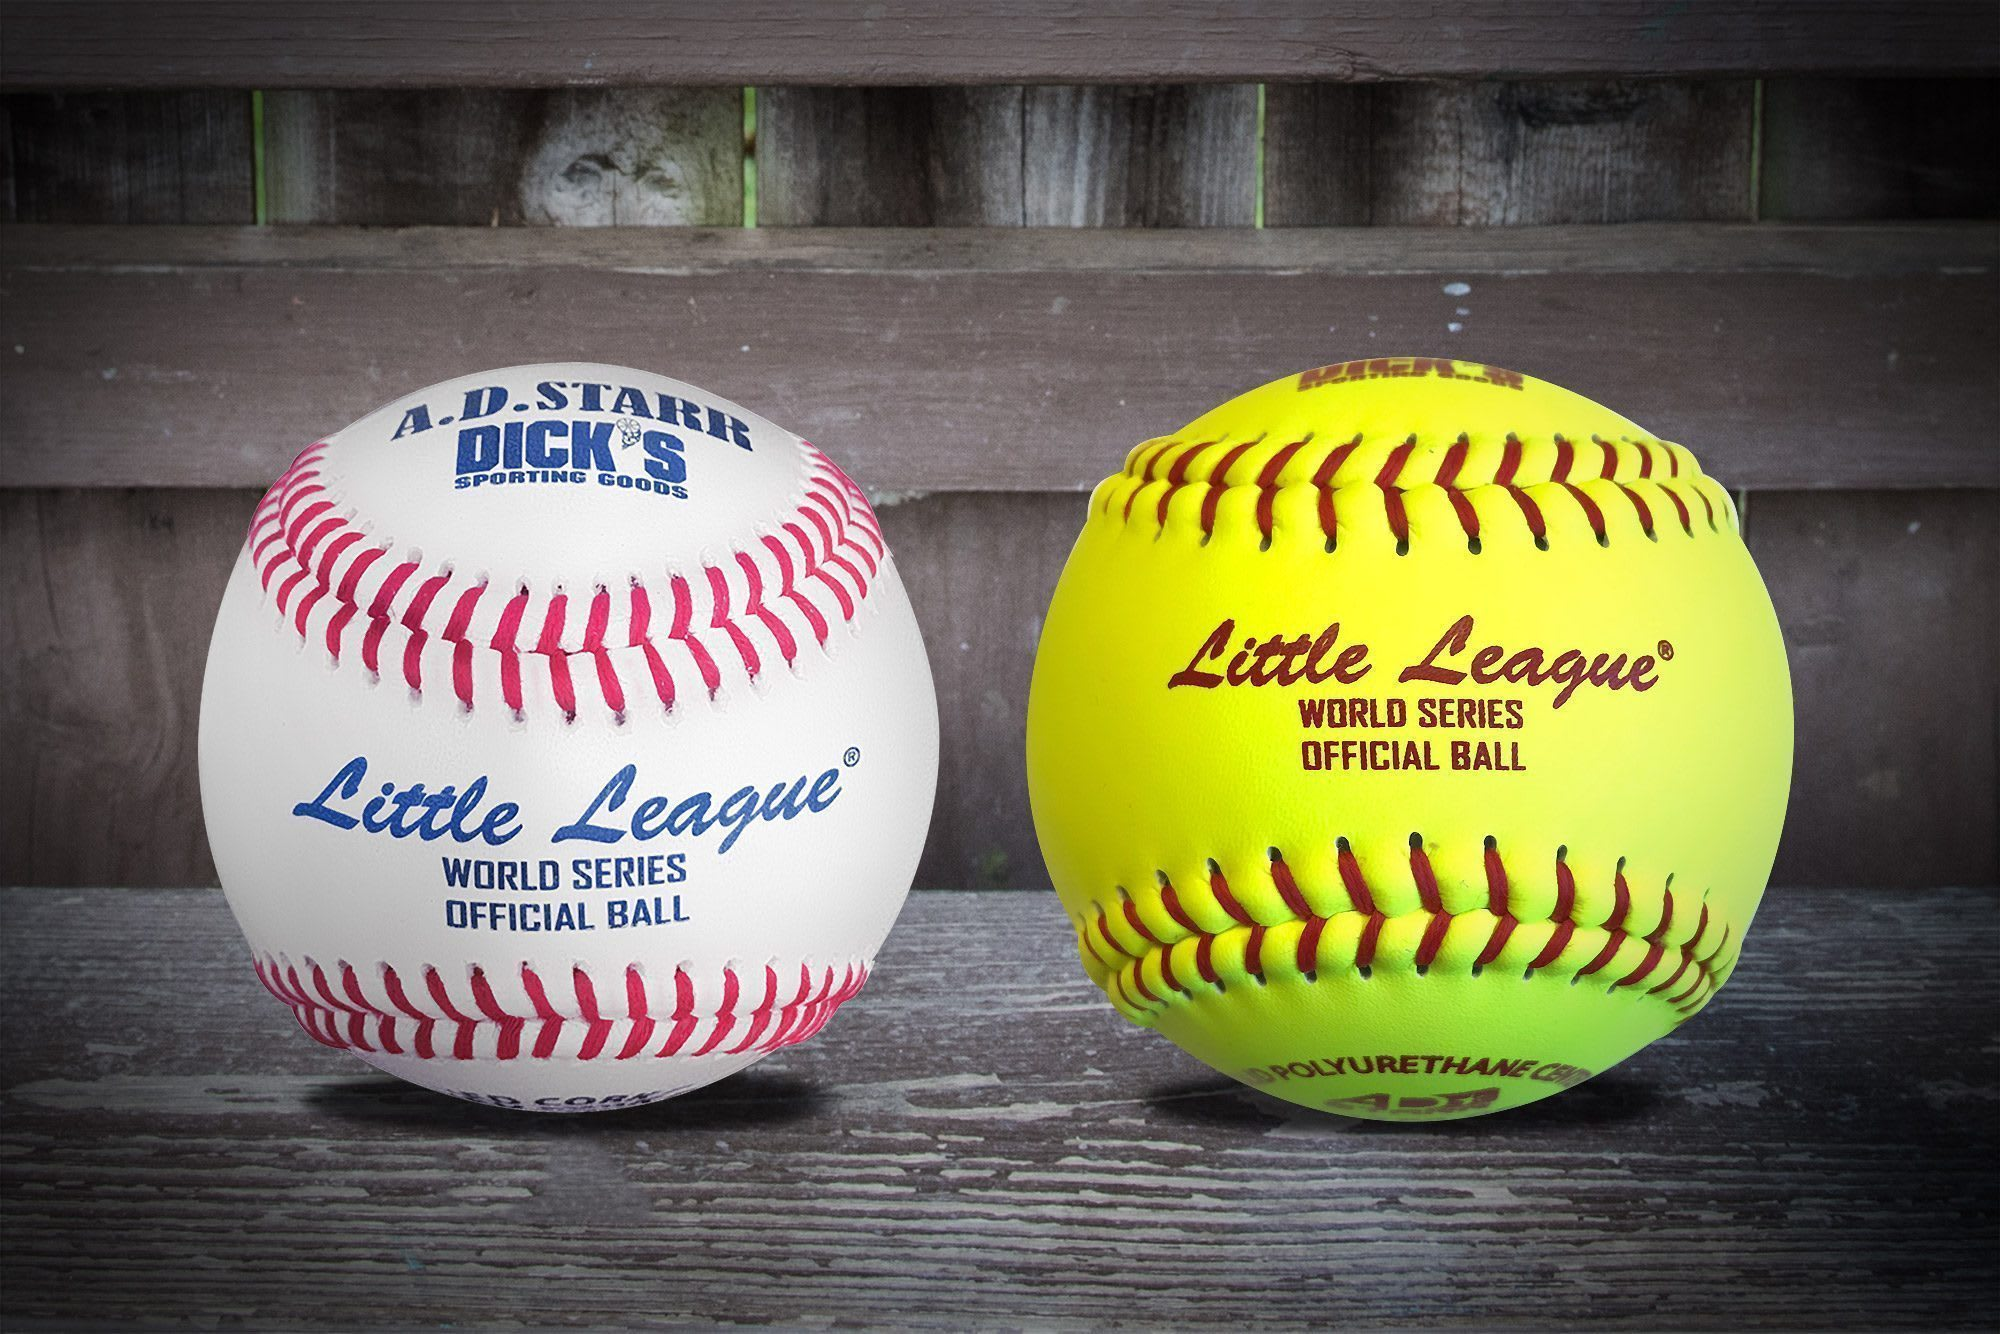 A D  STARR Named the Official Ball Supplier of the Little